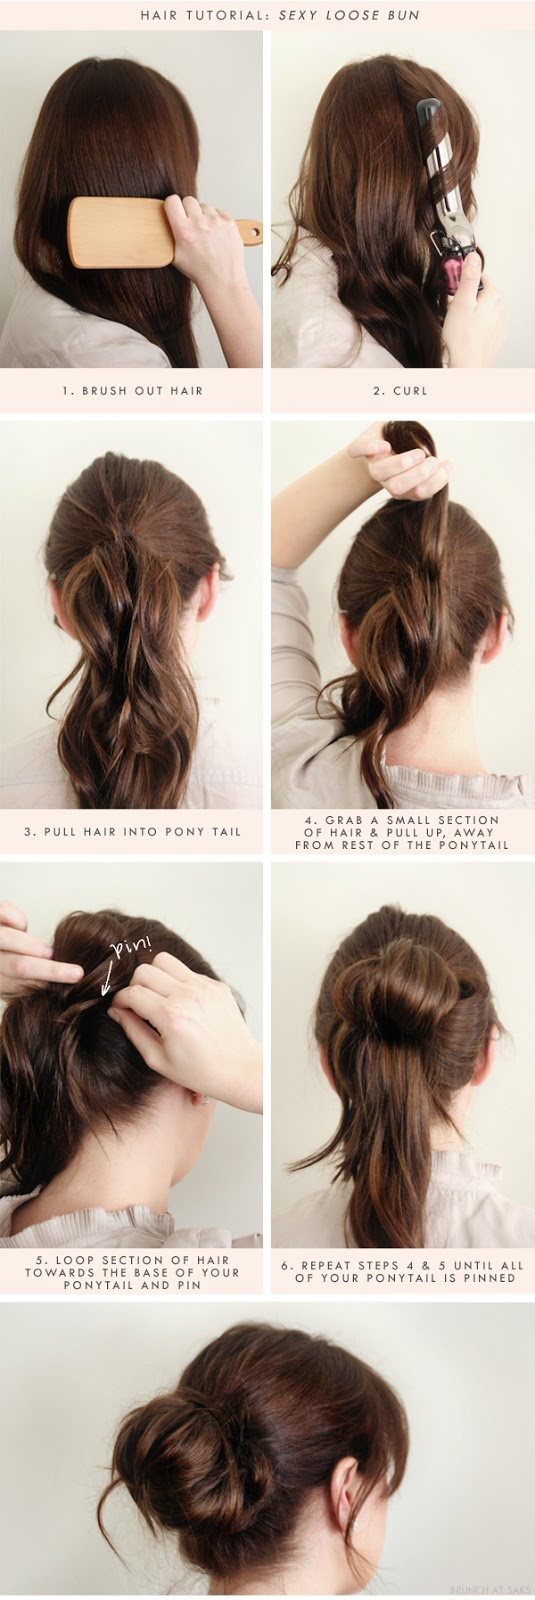 Top 25 messy hair bun tutorials perfect for those lazy mornings sexy loose buns for those lazy days urmus Gallery